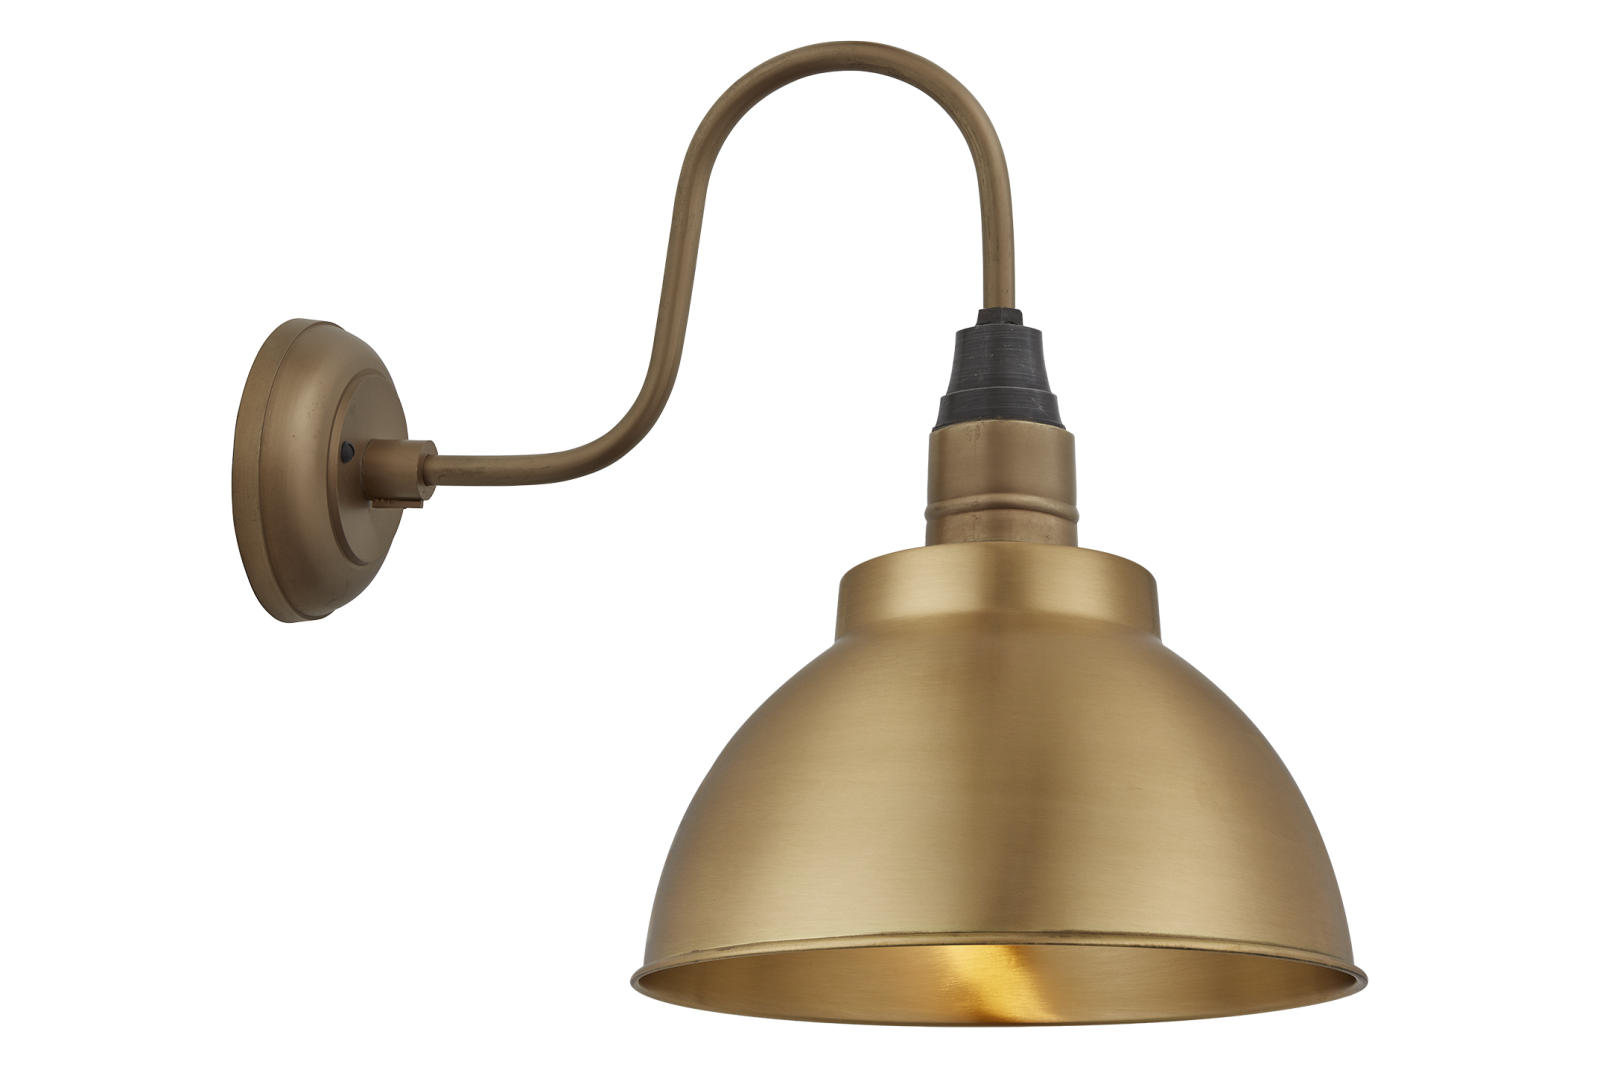 Swan Neck Dome Wall Light - 13 Inch Swan Neck Dome Wall Light - 13 Inch - Brass - Brass Holder